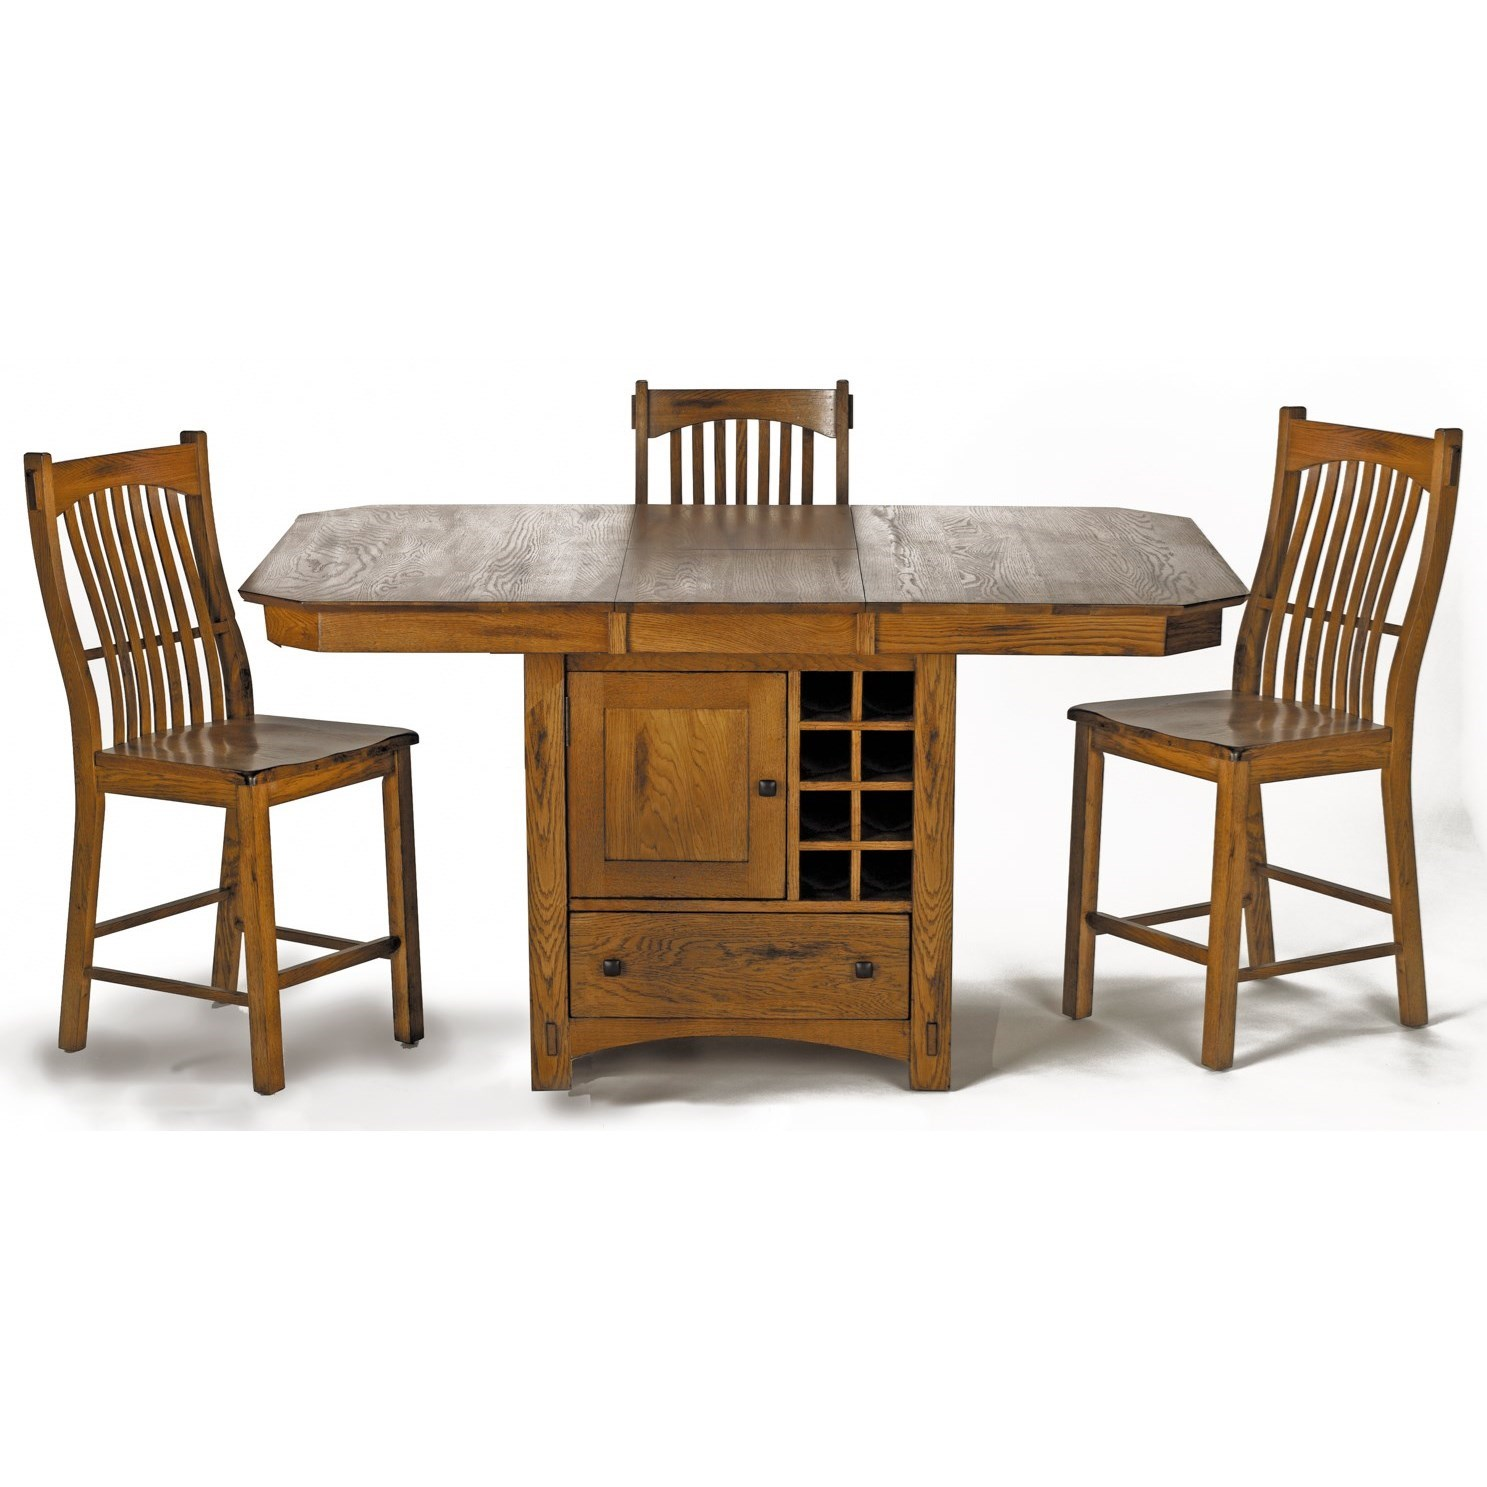 Laurelhurst 5-Piece Counter Height Table Set  by A-A at Walker's Furniture